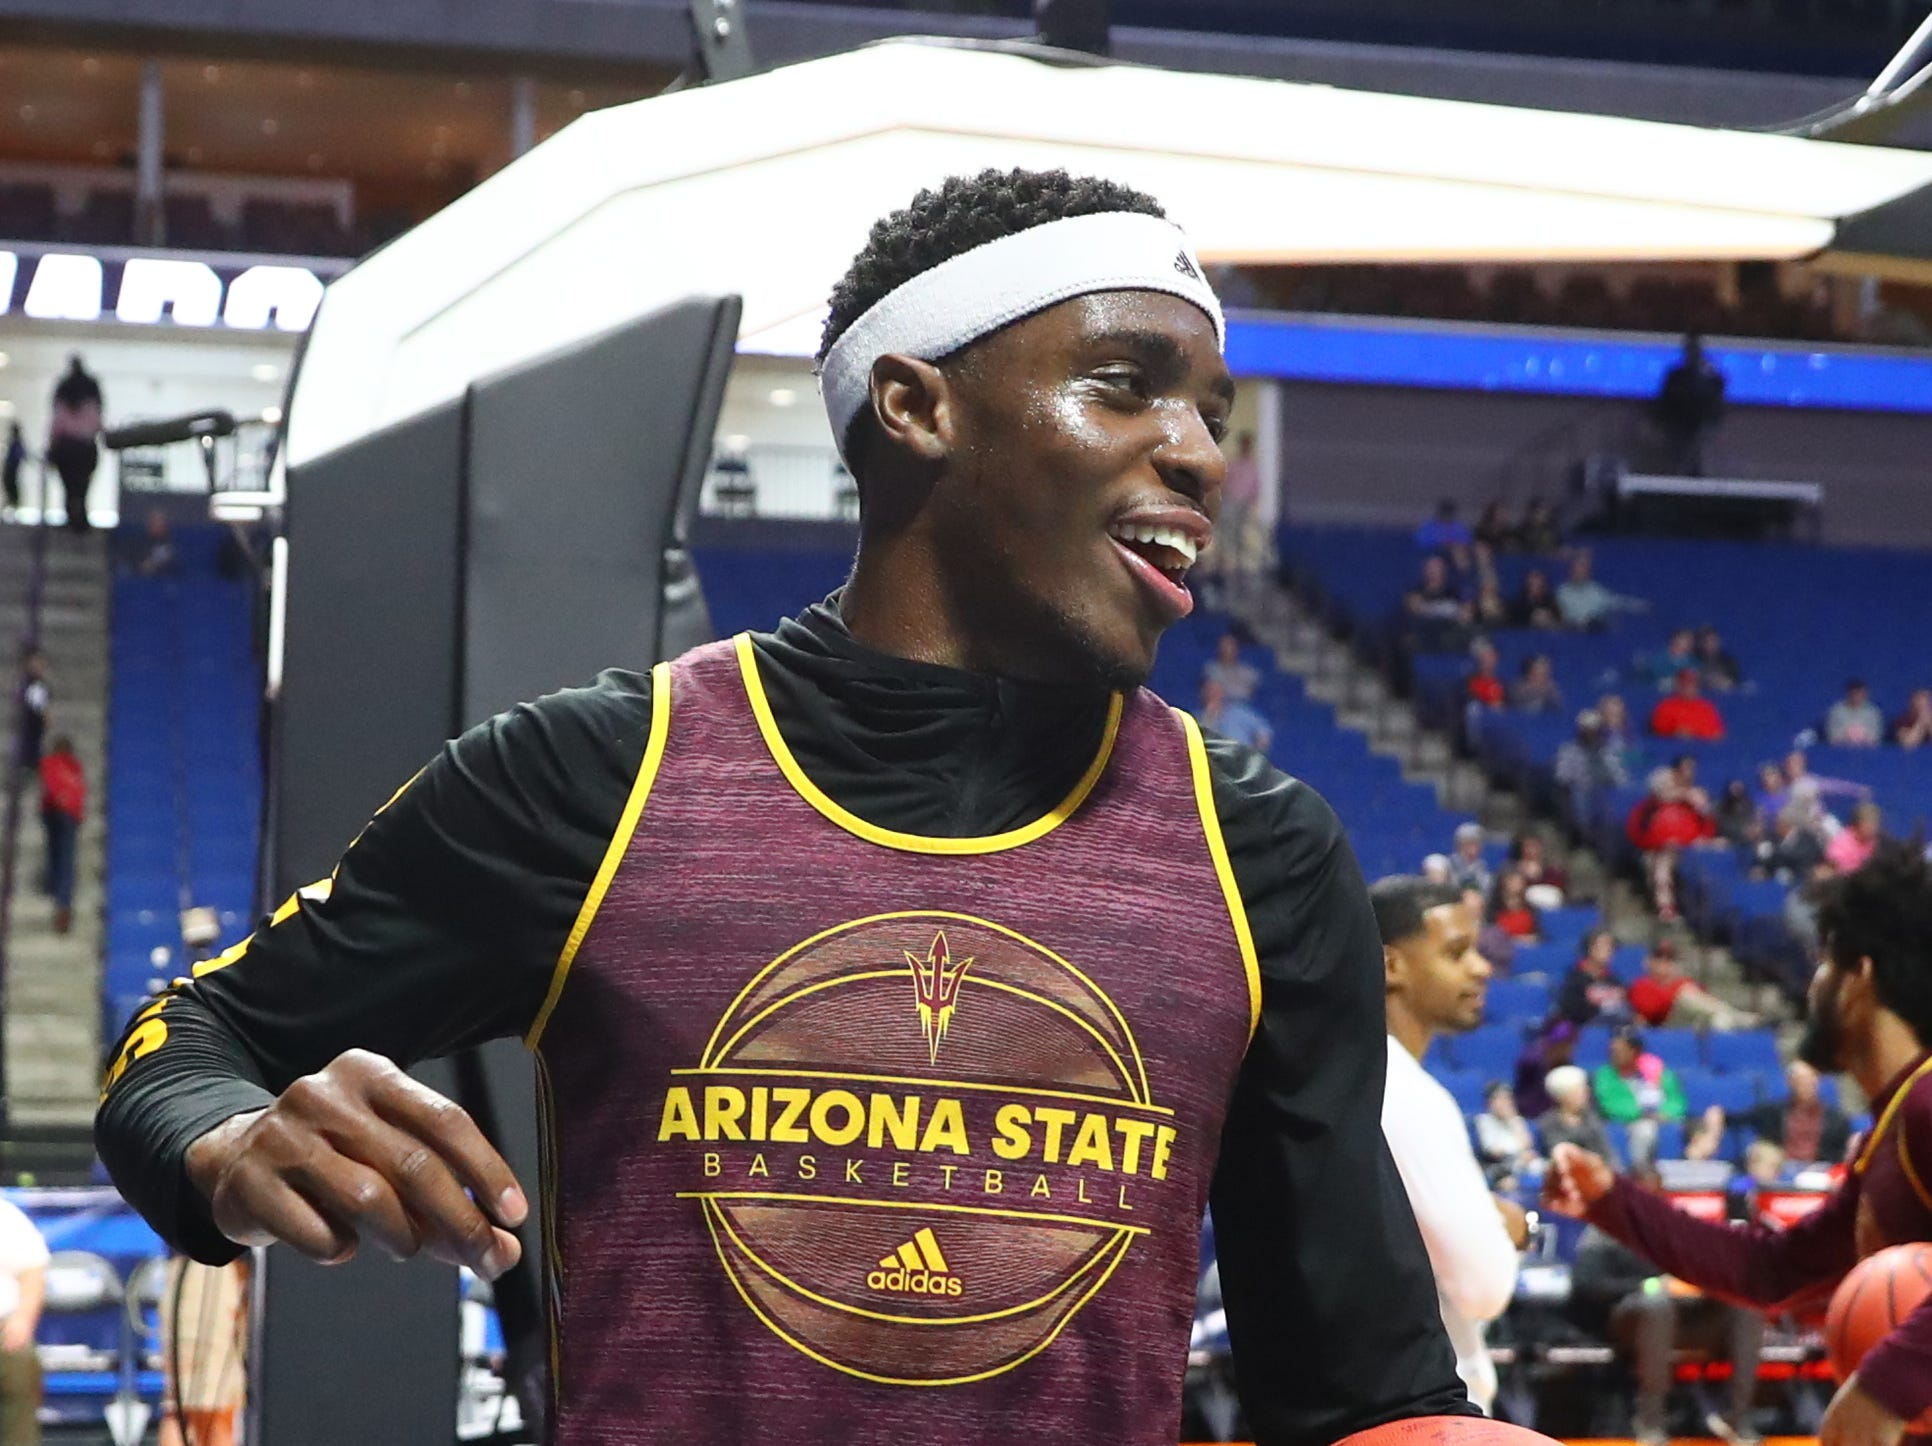 Mar 21, 2019; Tulsa, OK, USA; Arizona State Sun Devils forward Zylan Cheatham during practice before the first round of the 2019 NCAA Tournament at BOK Center. Mandatory Credit: Mark J. Rebilas-USA TODAY Sports